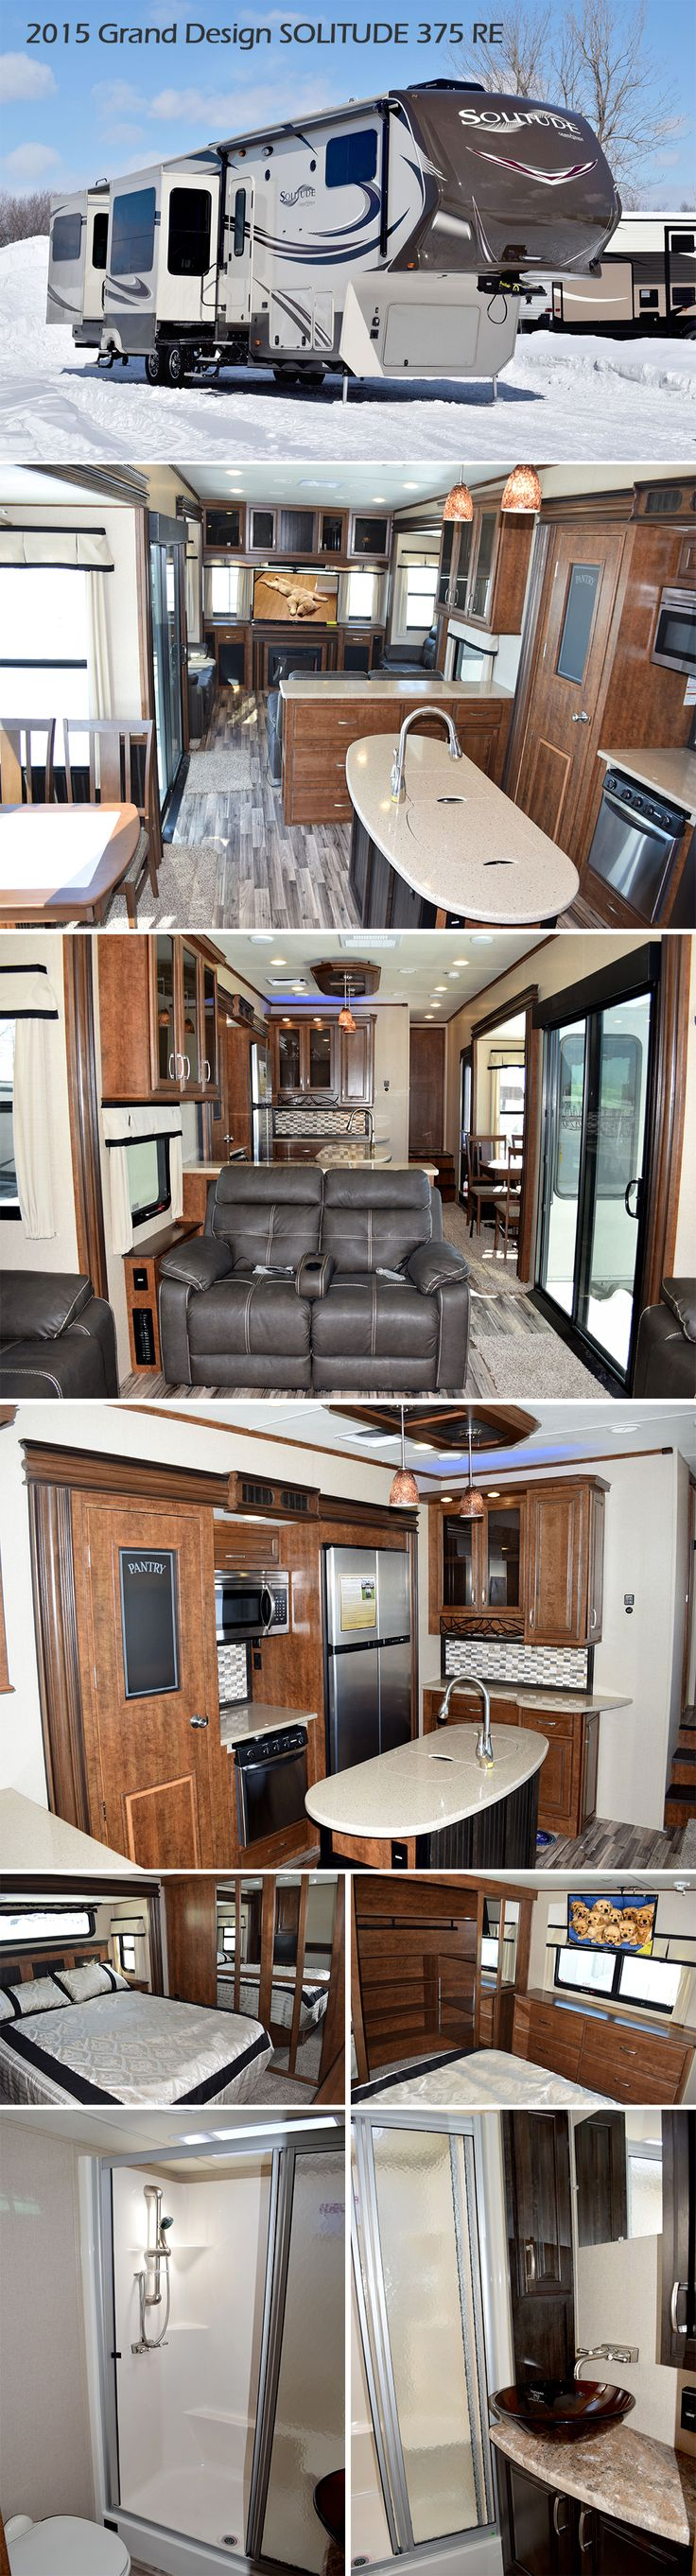 """2015 Grand Design SOLITUDE 375RE Fifth Wheel. If more room is what you desire, Solitude is the most spacious Extended Stay Fifth Wheel ever built! The Solitude RV delivers taller ceilings, taller, deeper cabinets, larger scenic window areas, a full 6' 8"""" tall slide-out, and a body width that measures a full 101 inches! You may be looking for an extended stay unit to live in for months at a time... but you just may want to live in this one for the rest of your life!"""